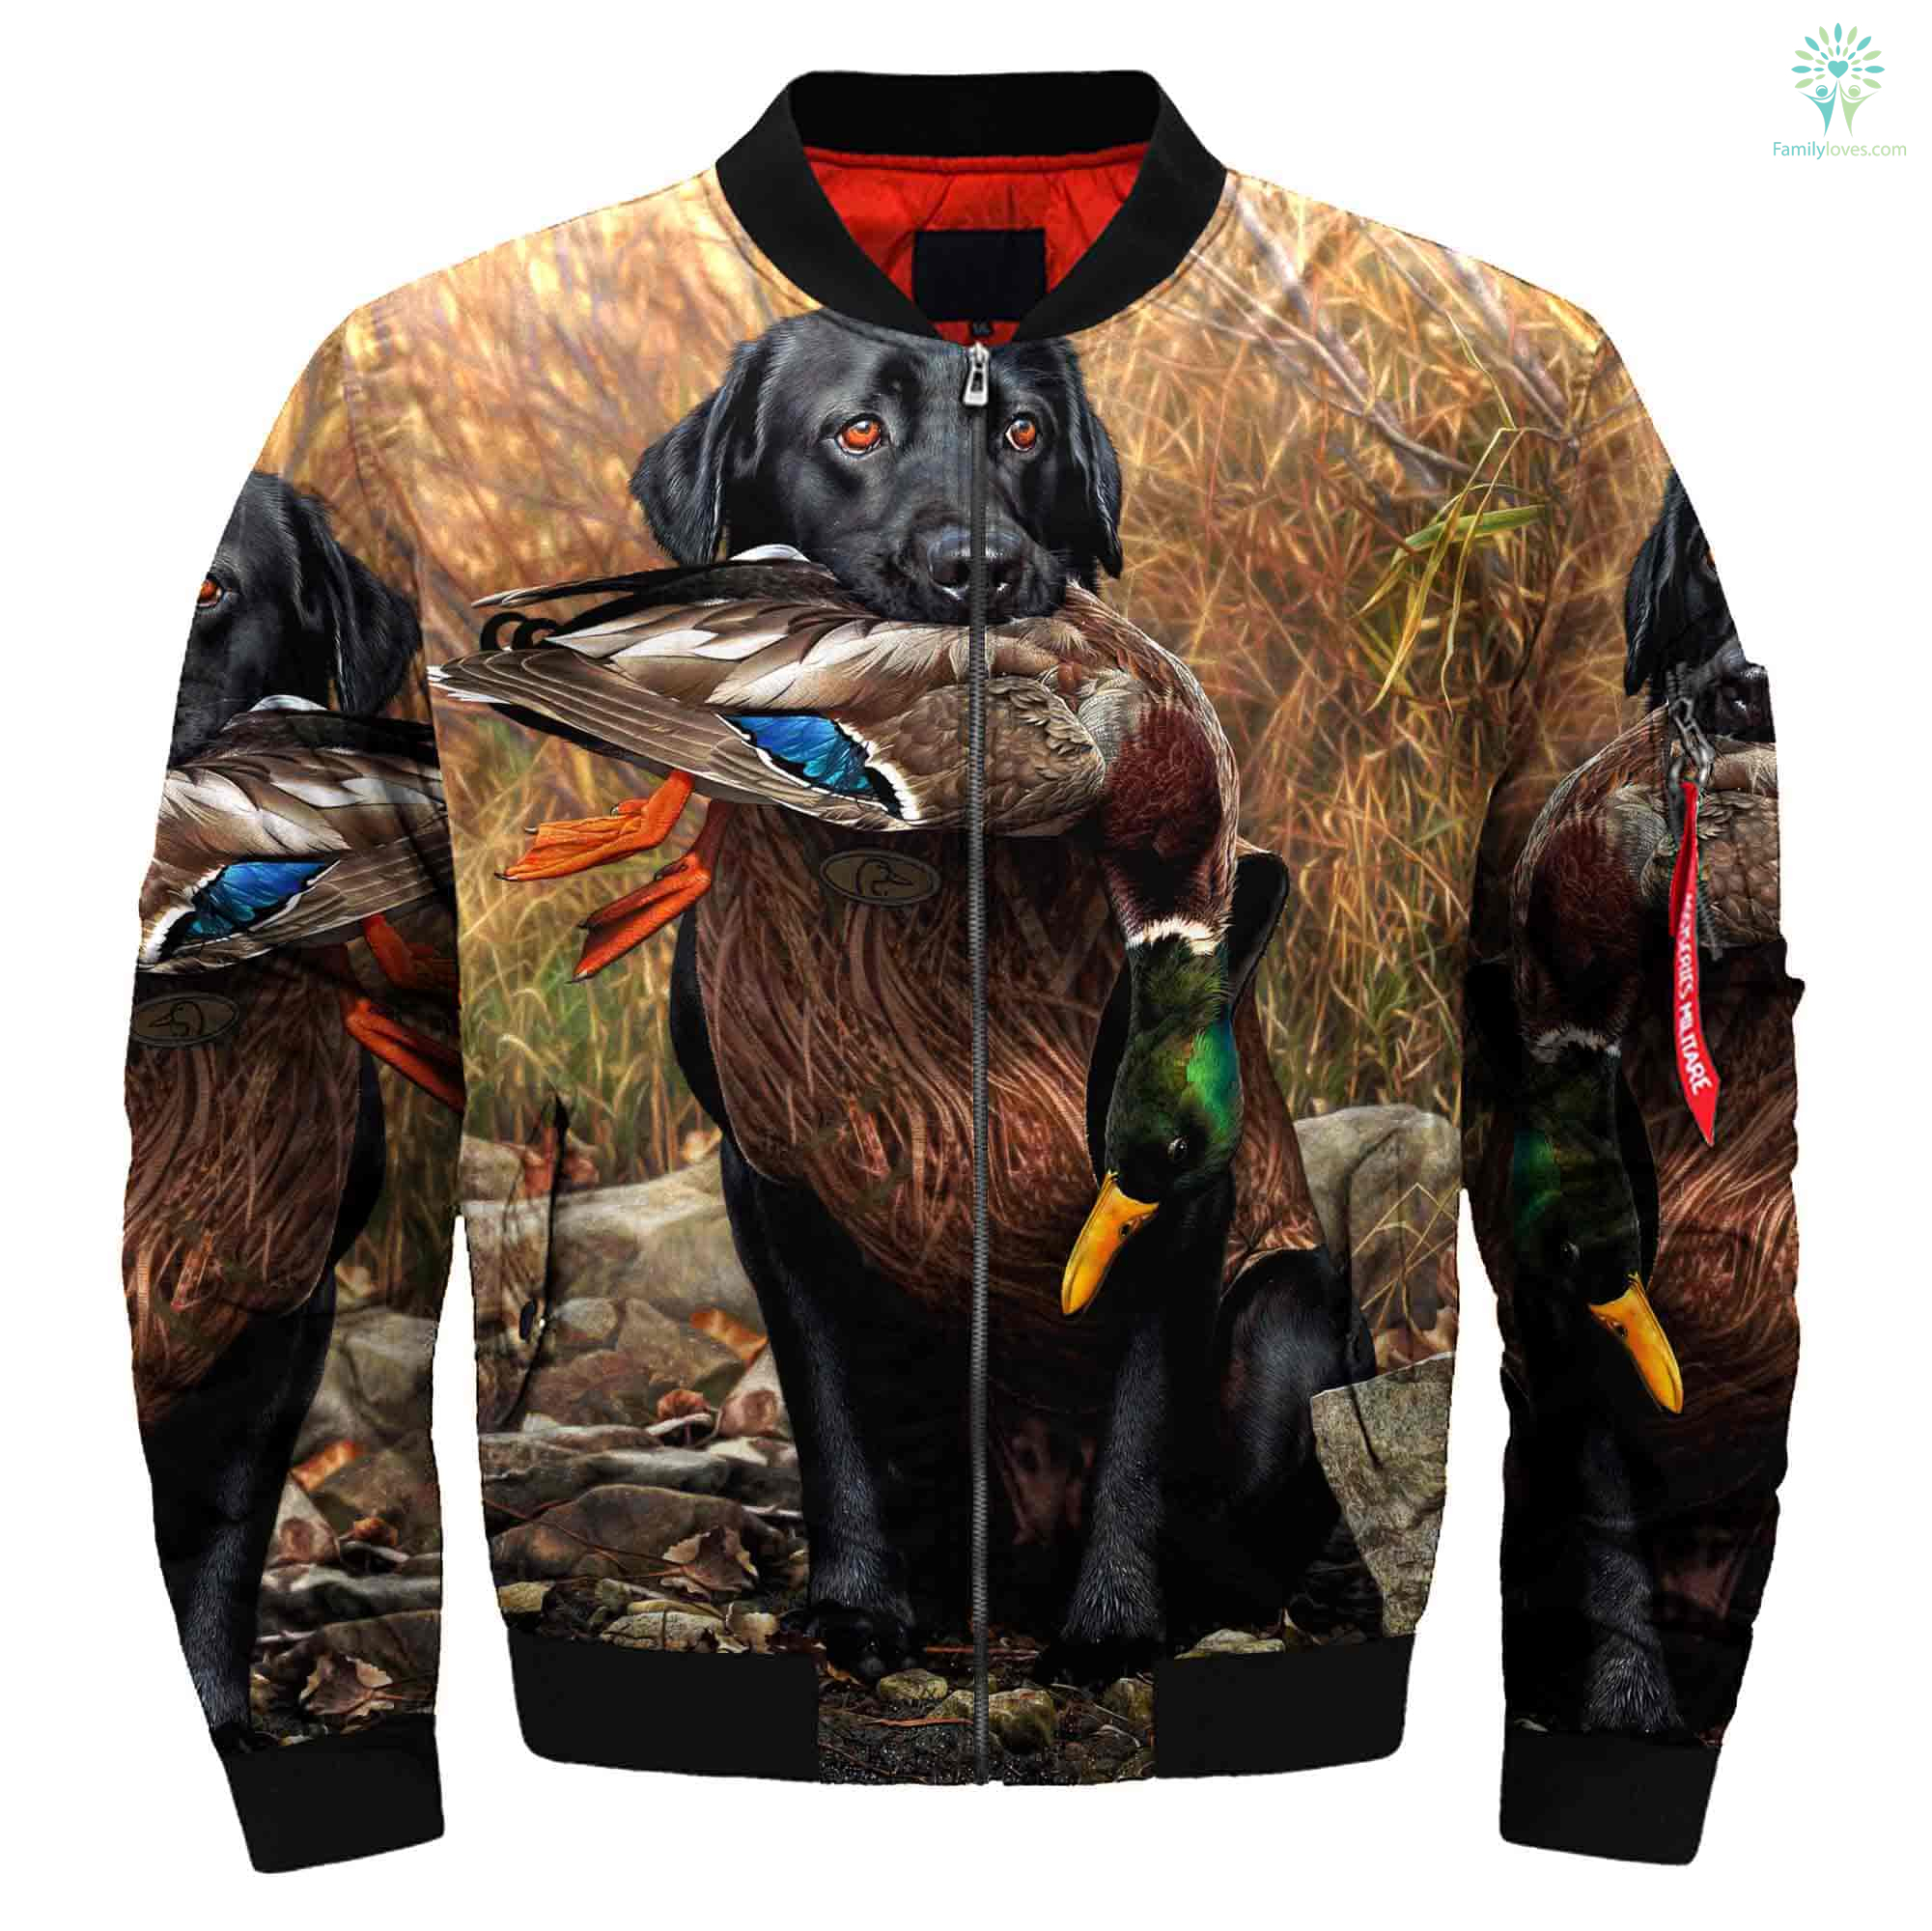 e8d97763f962 familyloves.com 3D All Over Printed Dog Hunting Duck Art Jacket %tag